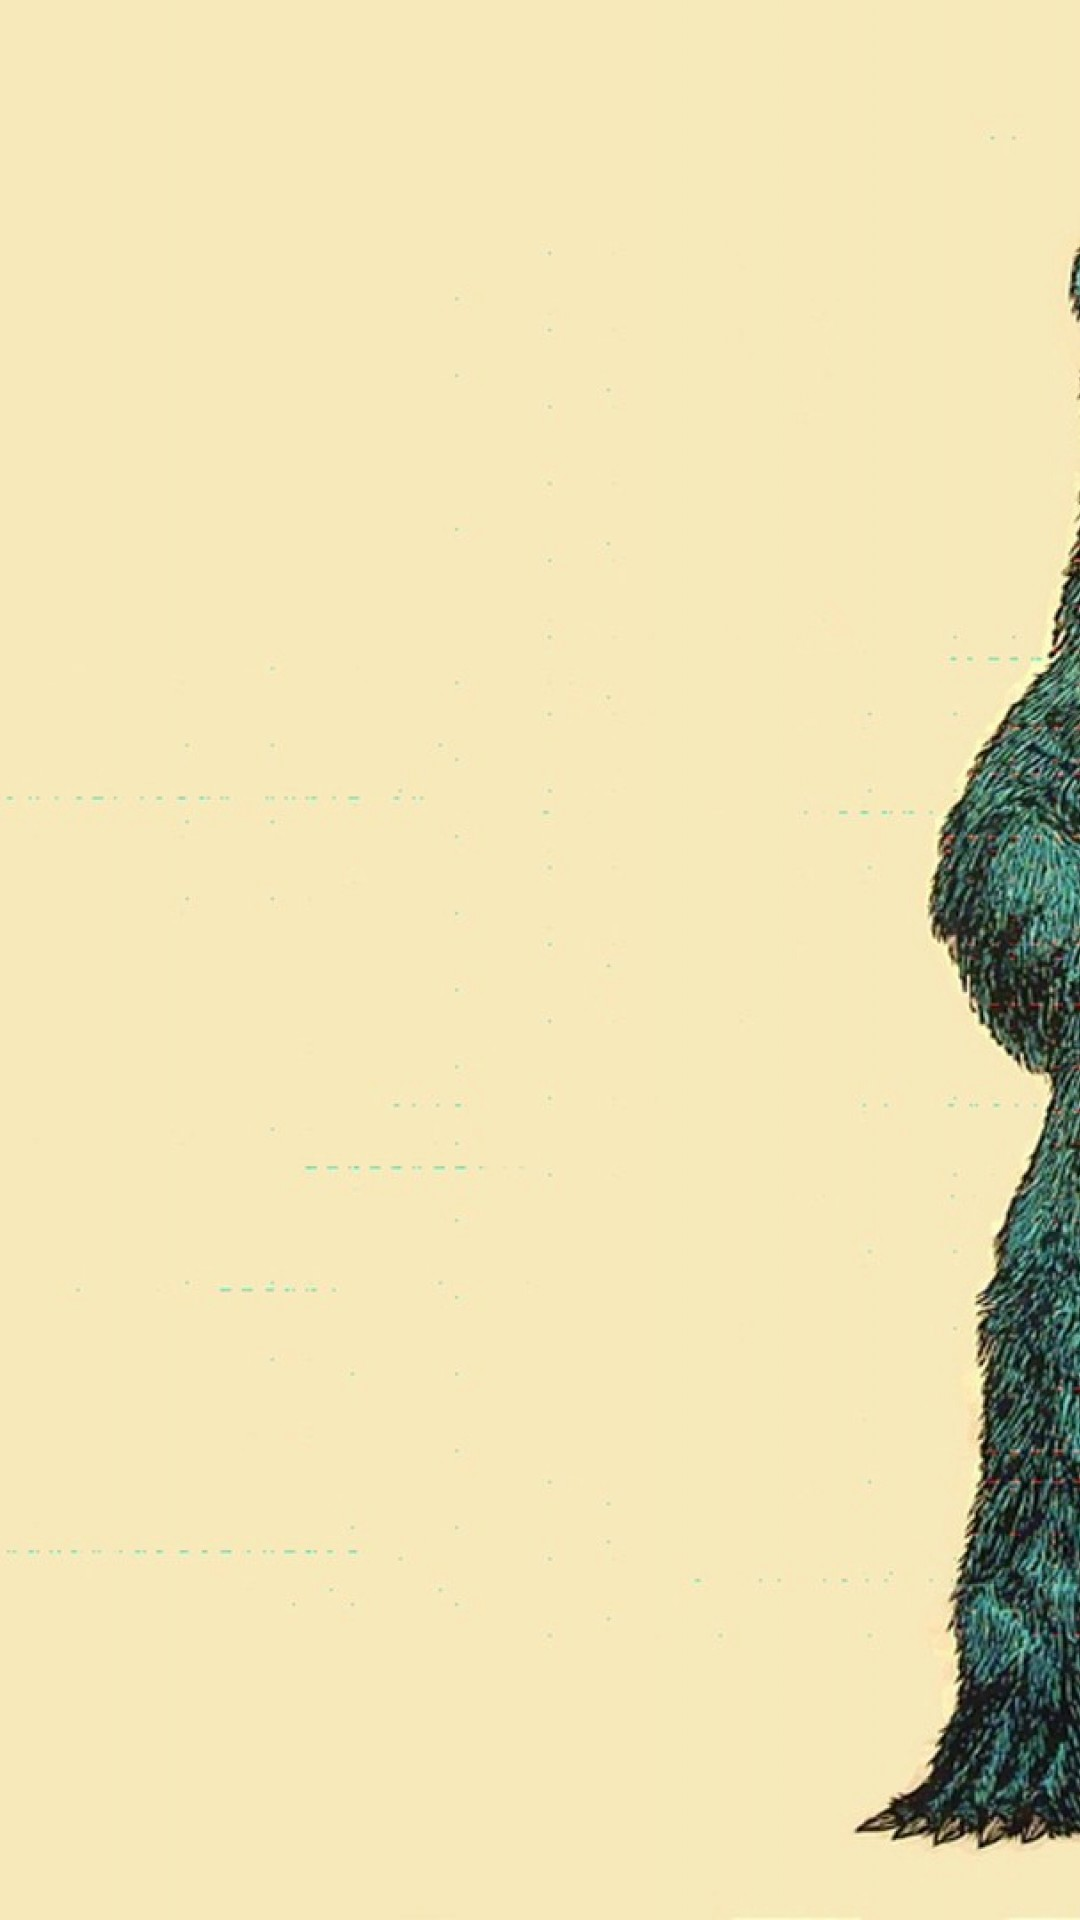 Funky Bear Drawing Wallpaper For Desktop And Mobiles Iphone 6 6s